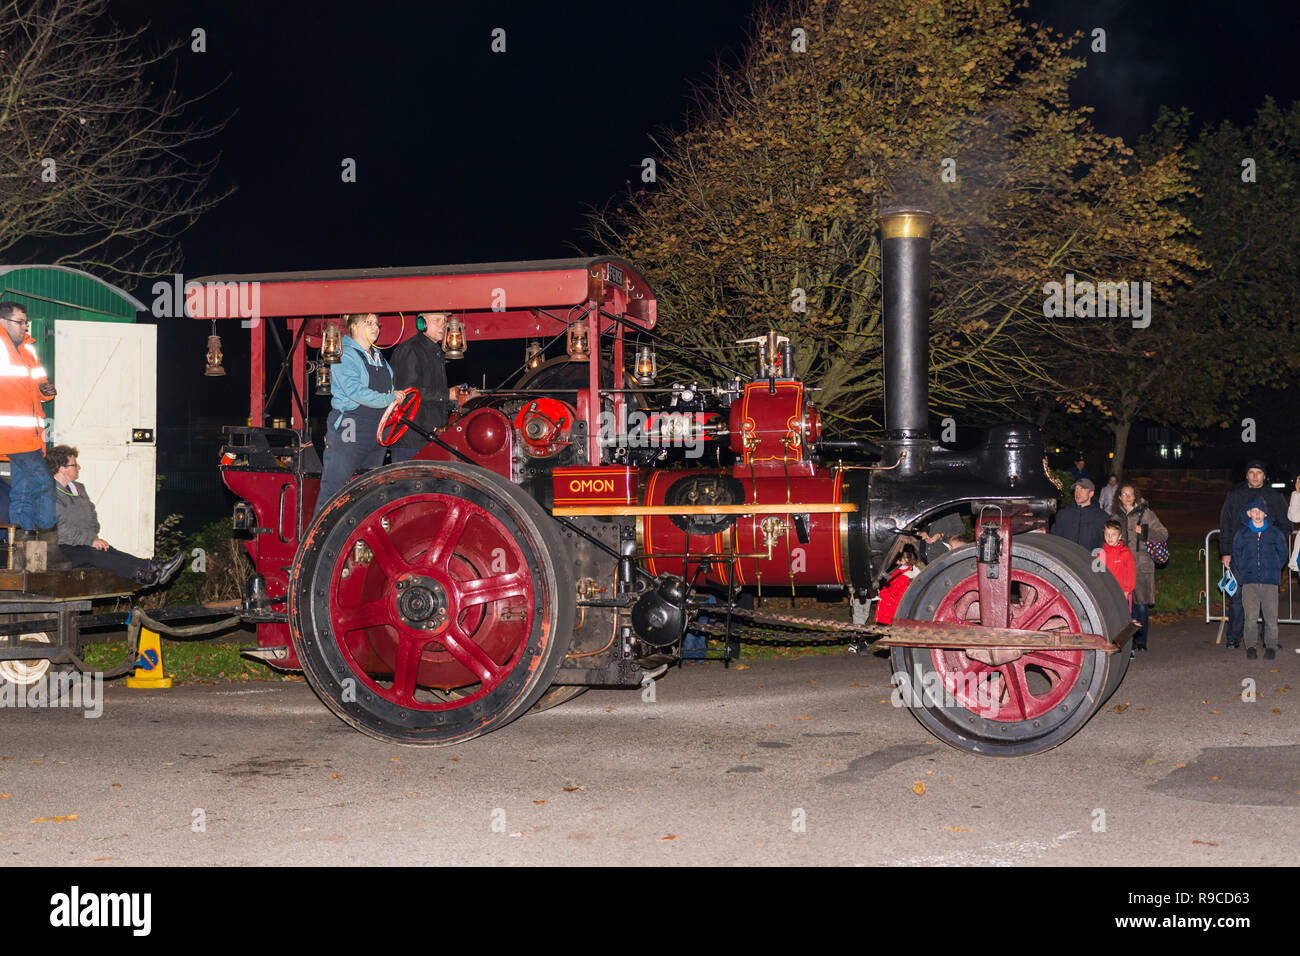 'Omon' (Reg No. FG1191), a 1926 steam powered Marshall Road Roller (steam engine, Works No. 80608) displayed as part of a night procession in the UK. - Stock Image